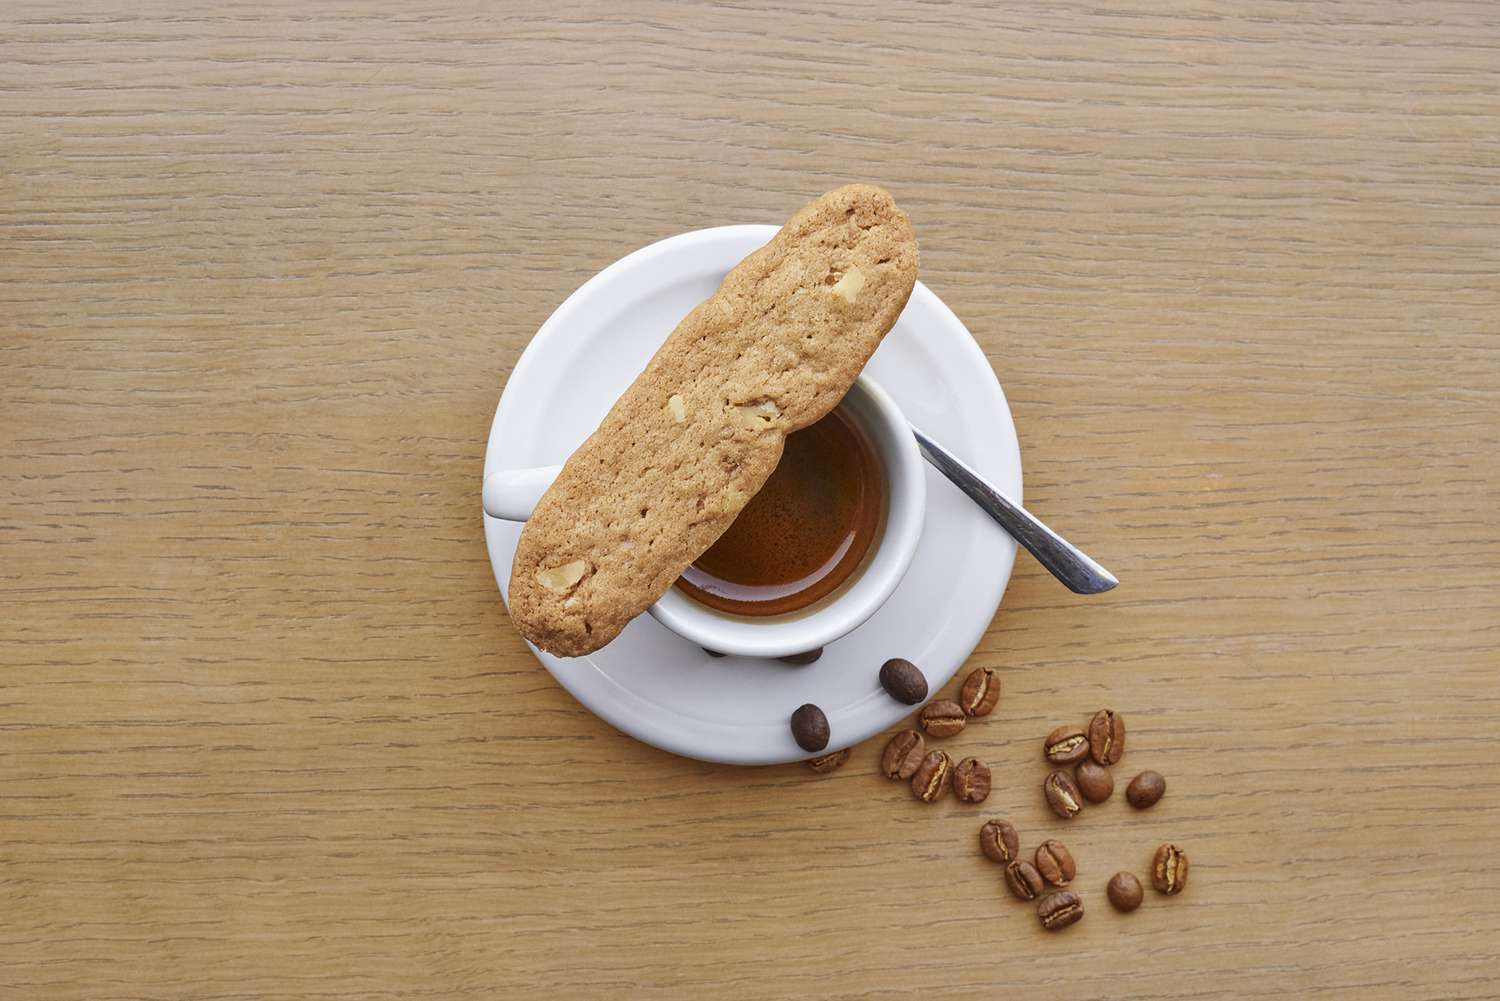 overhead shot of an oval-shaped cookie resting on an espresso shot with some coffee beans on the table